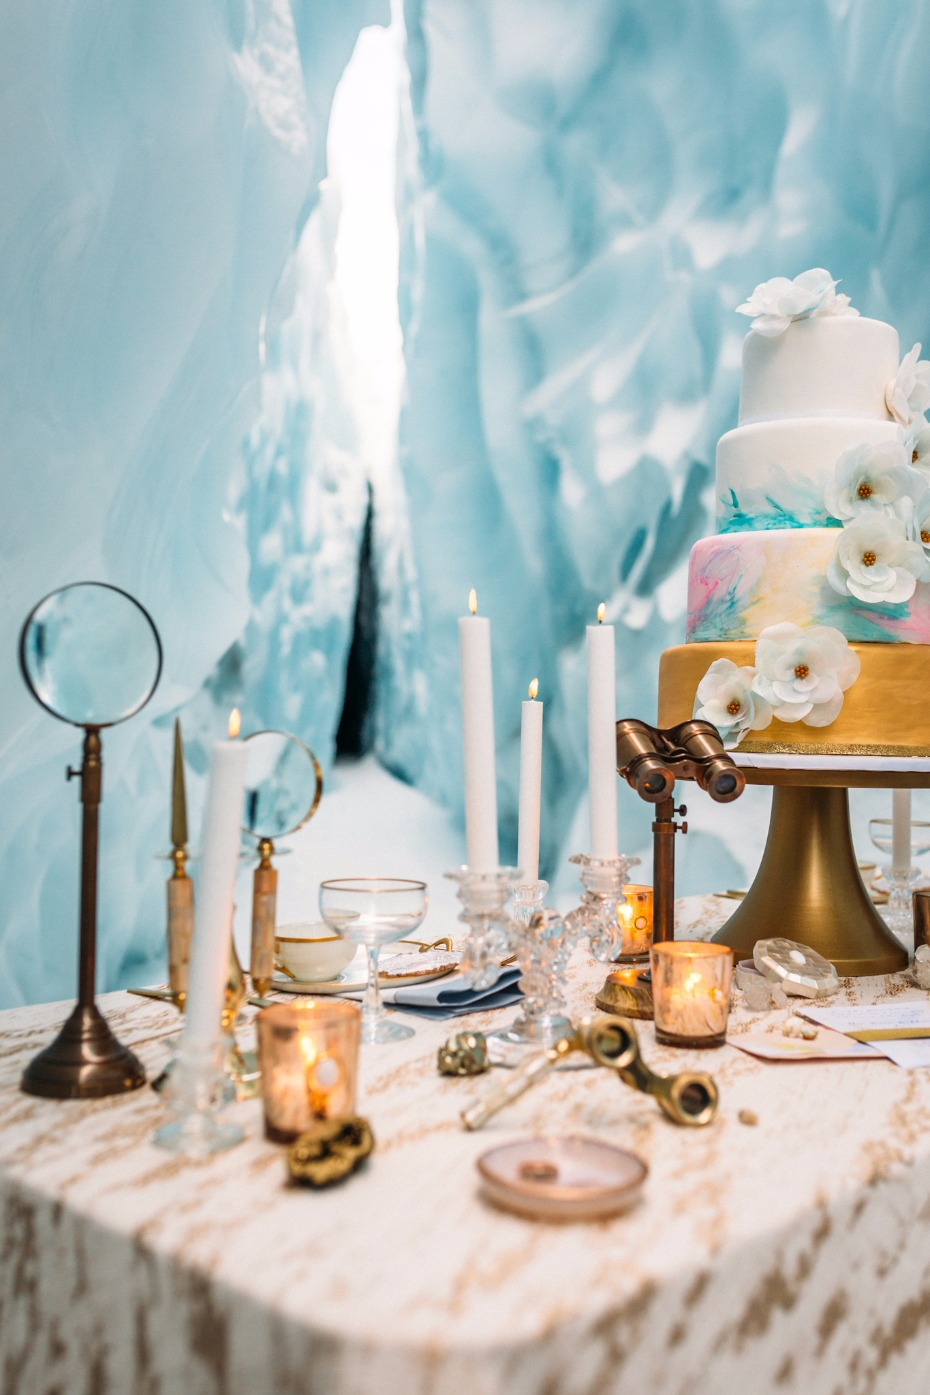 wedding cake table with vintage wedding decor